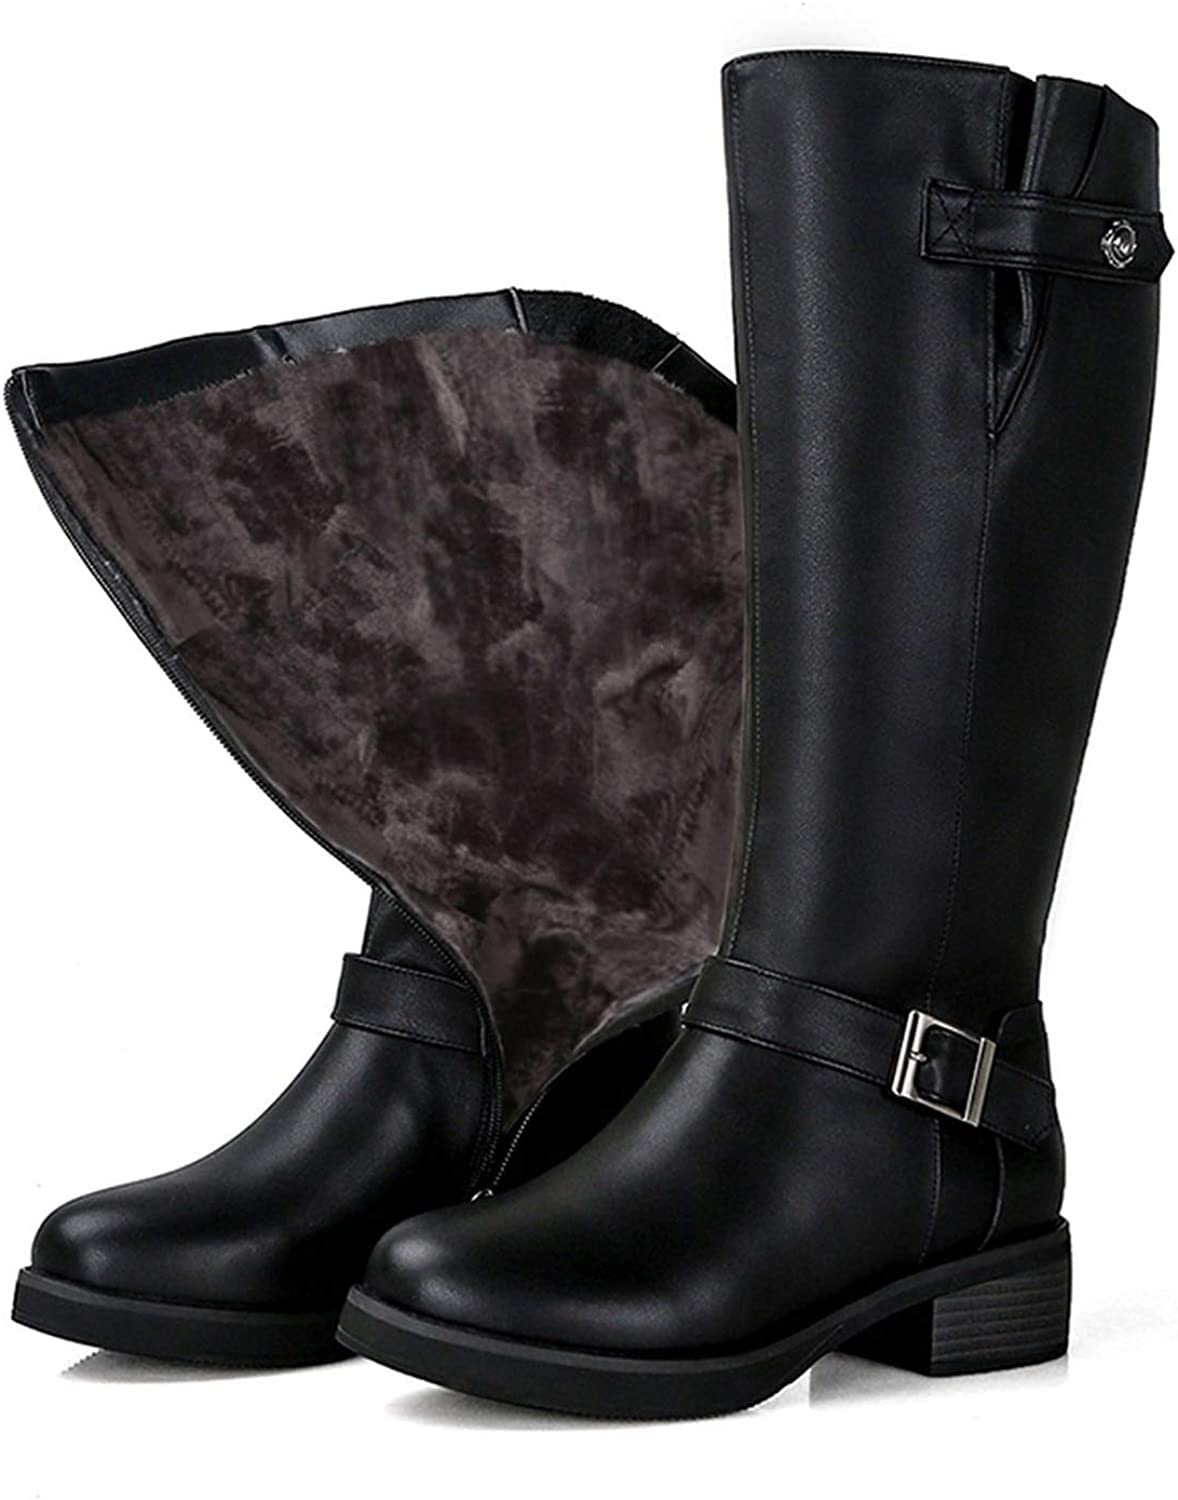 Genuine Leather Boots Shoes Natural Wool Warmful Plush Knee High Boots